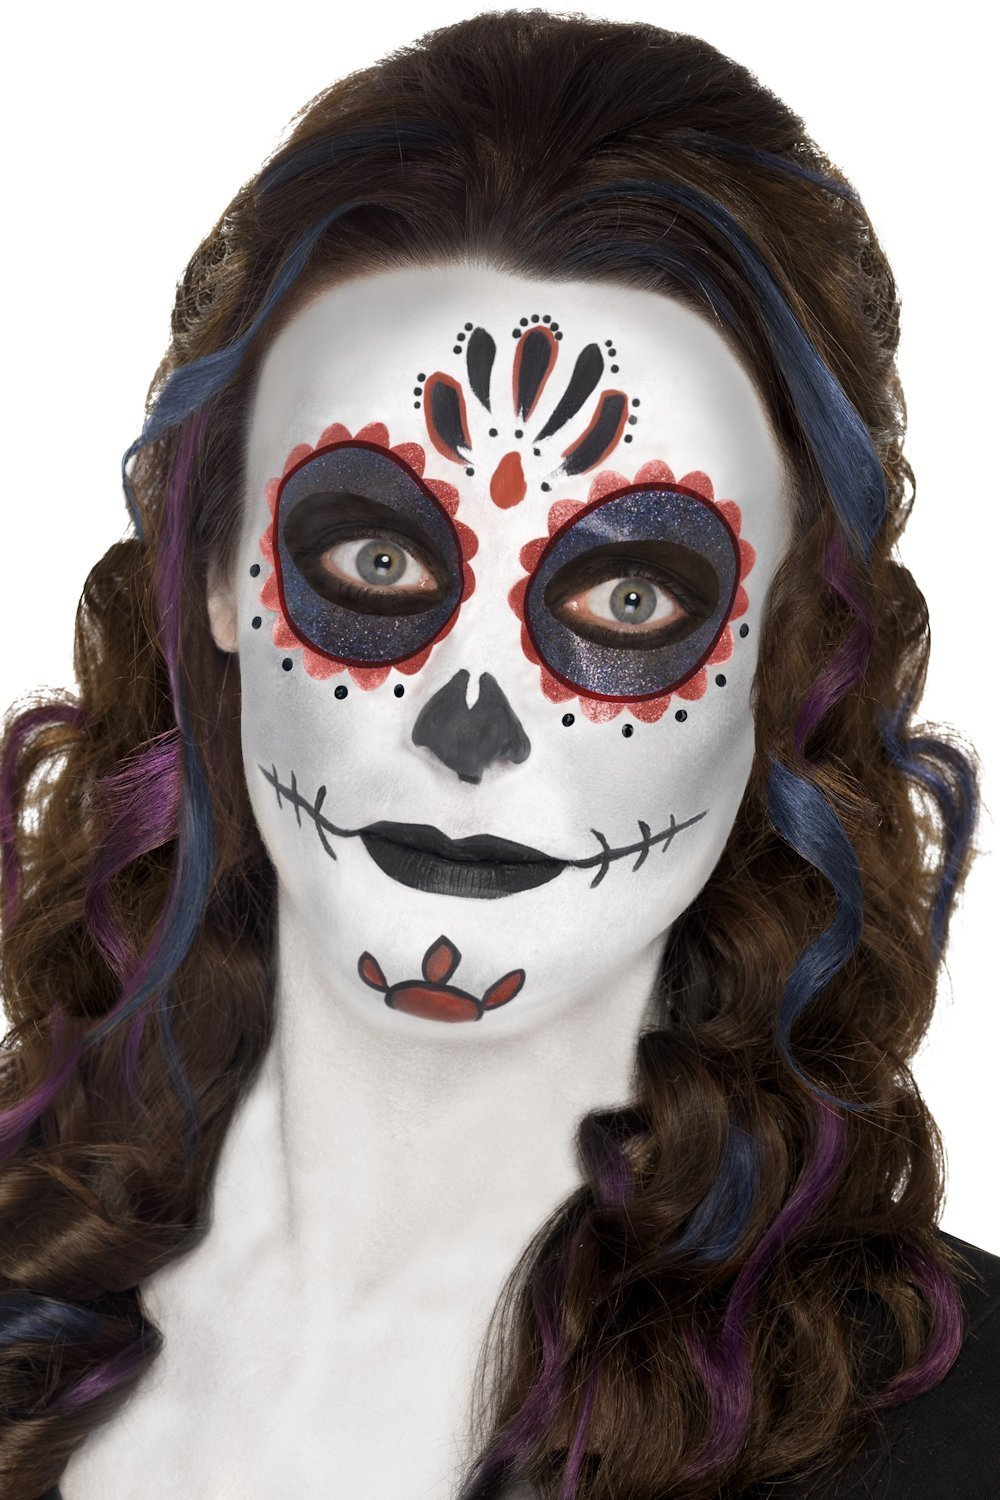 Day of the dead face paint 44226